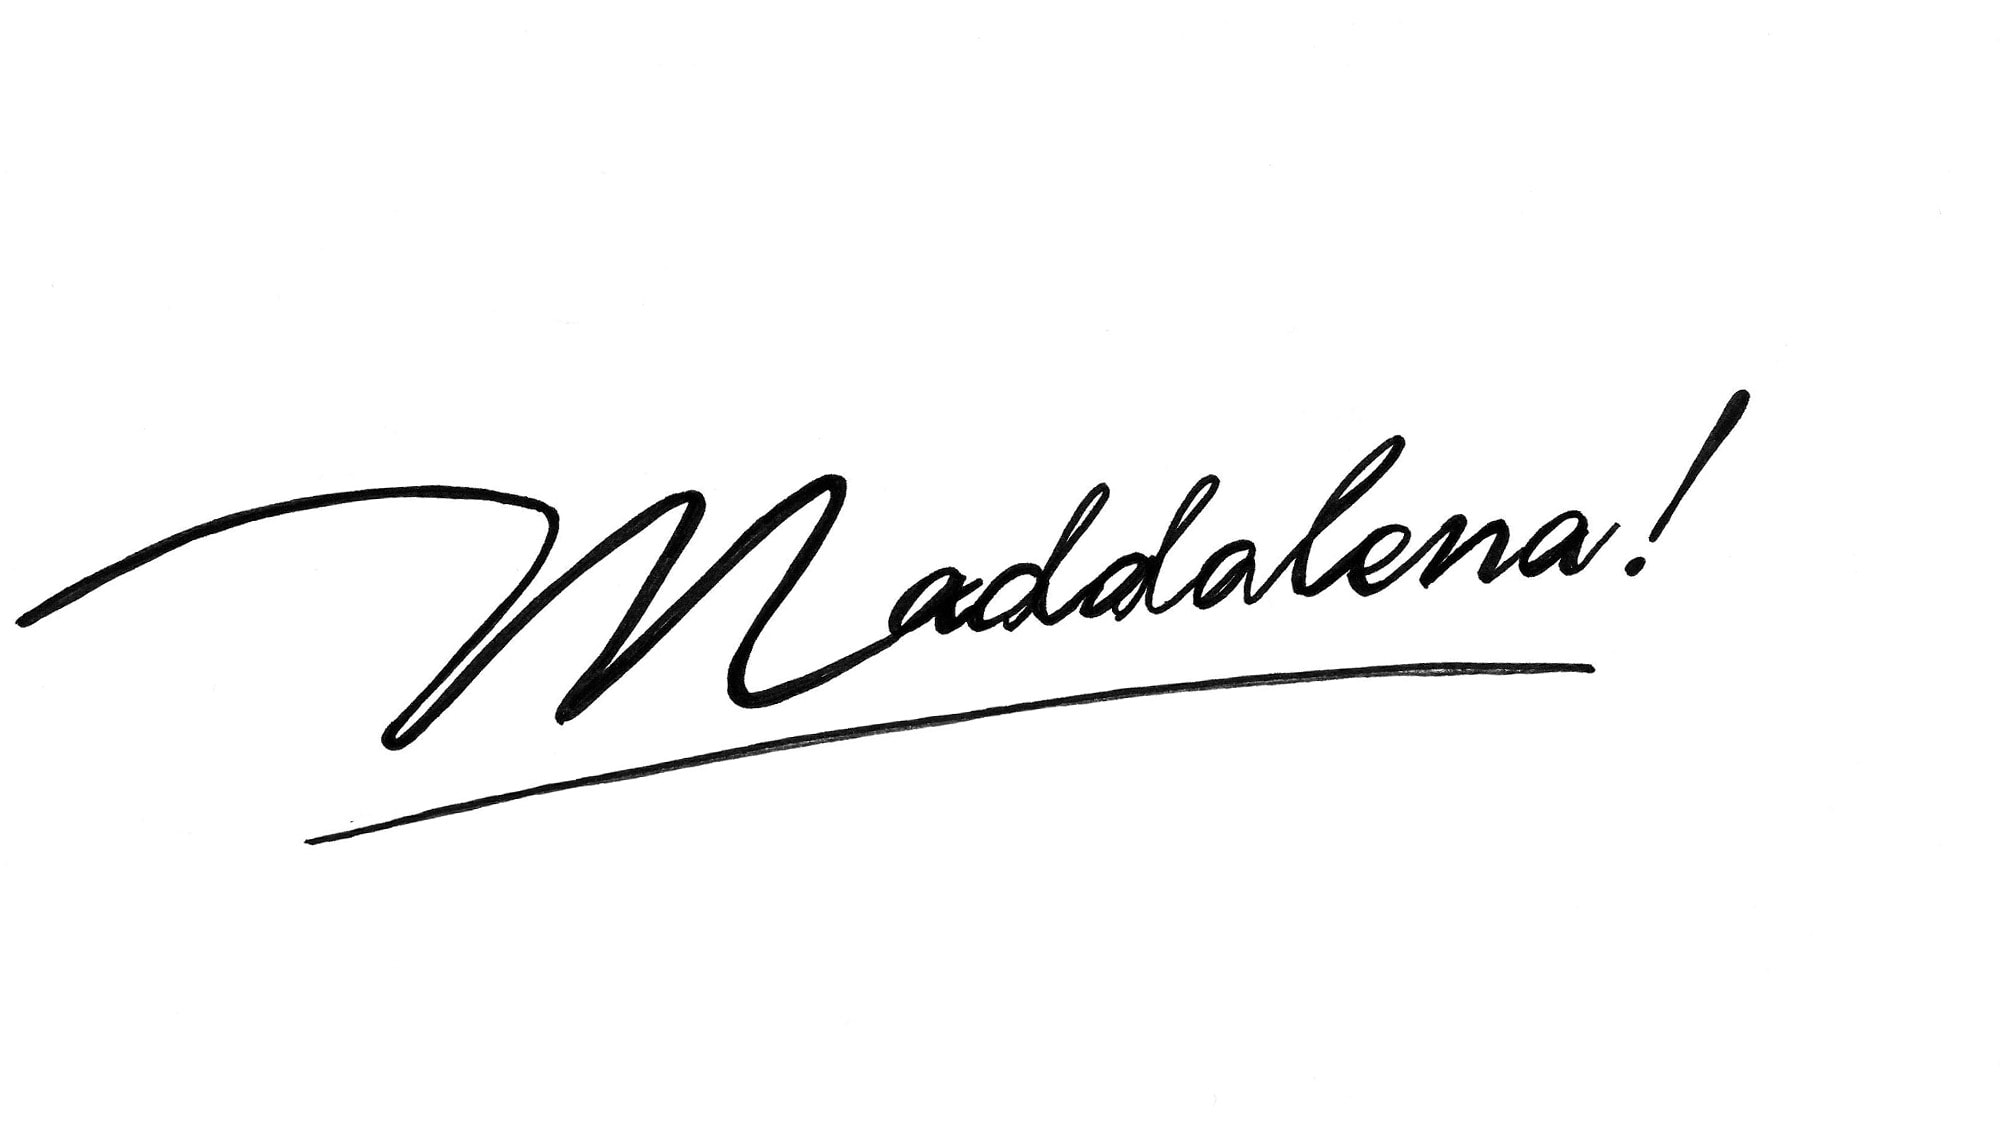 Short movie Maddalena! shown for Milano Design Film Festival